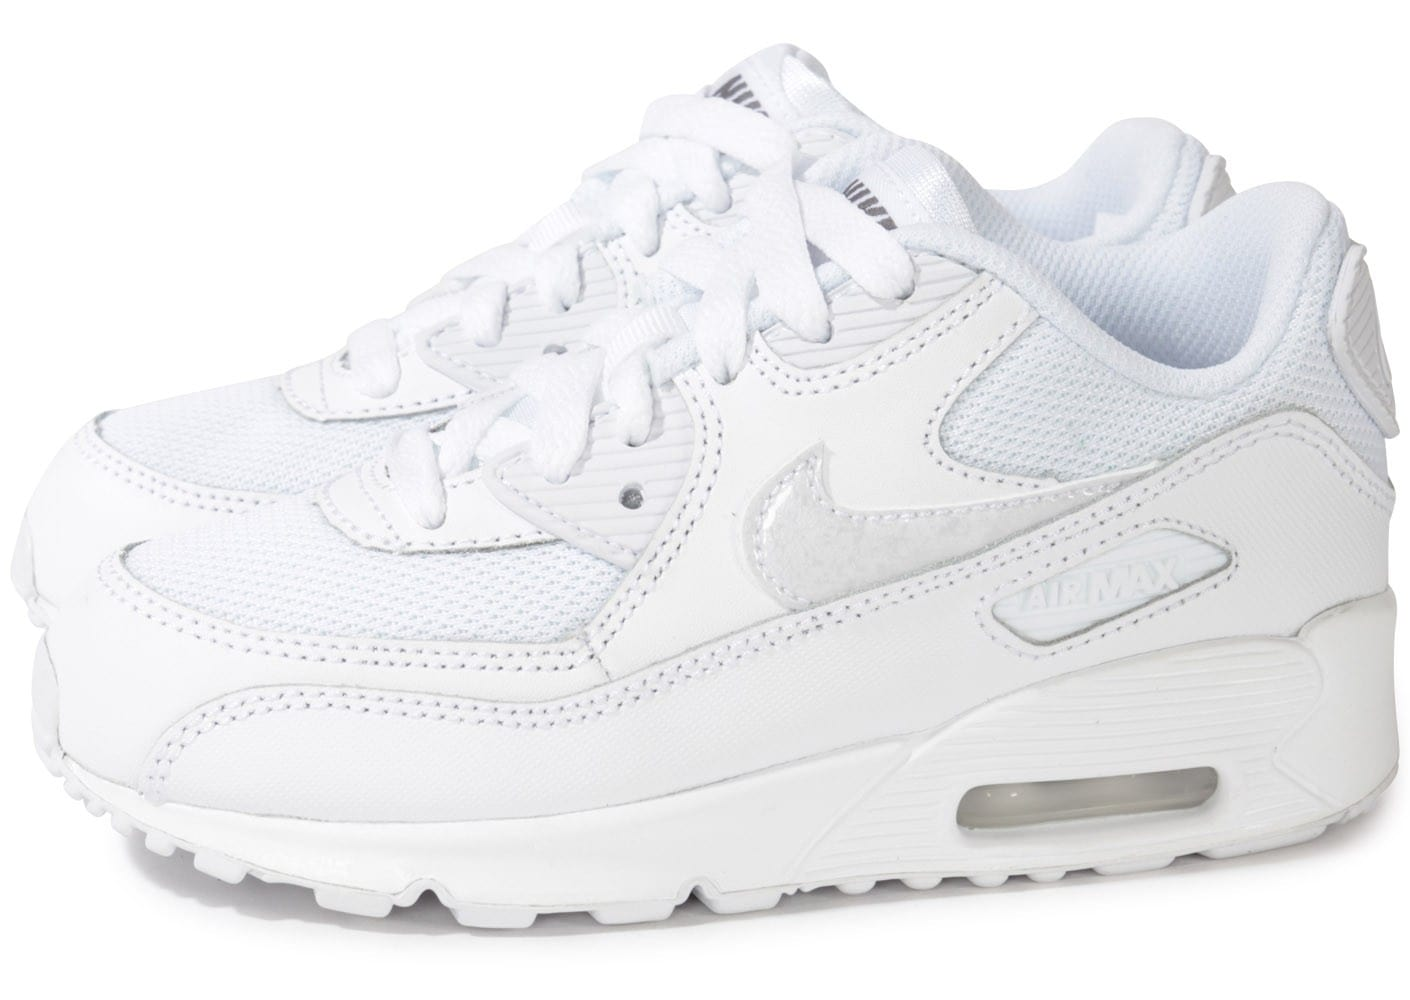 nike air max 90 enfant blanche chaussures chaussures chausport. Black Bedroom Furniture Sets. Home Design Ideas